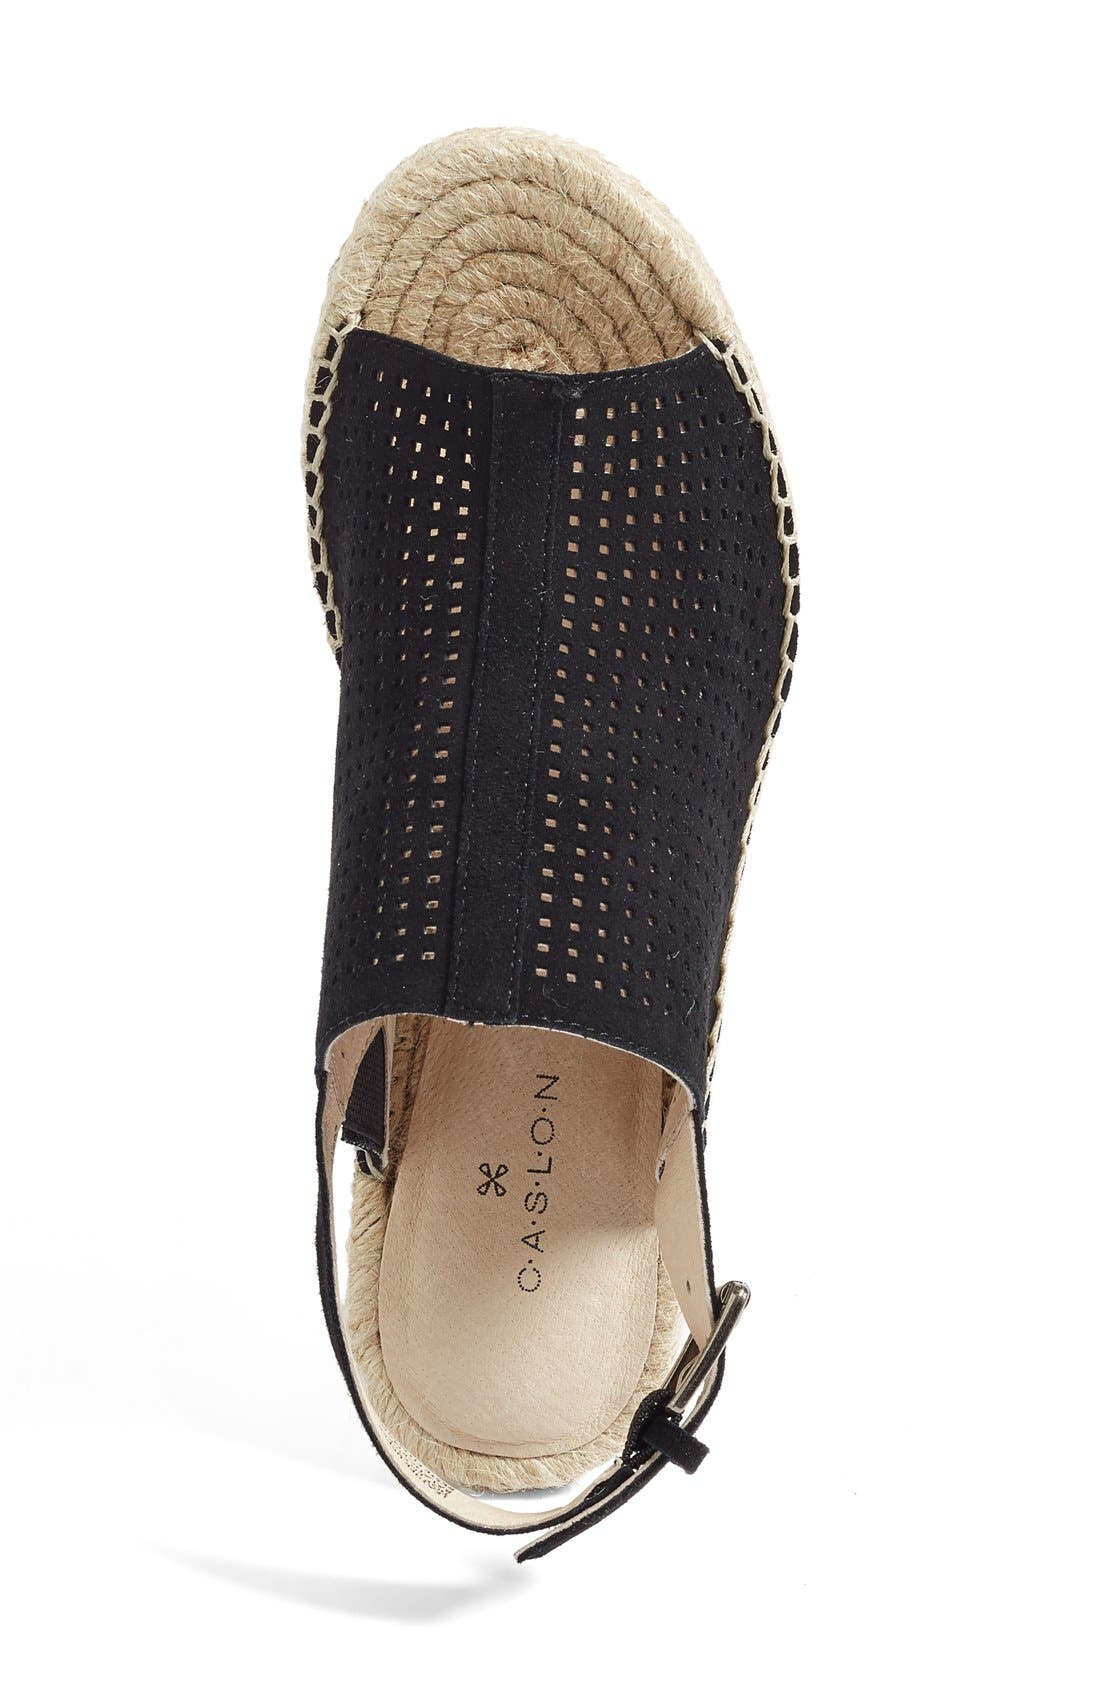 Sutton Slingback Sandal,                             Alternate thumbnail 3, color,                             Black Perferated Kidsuede